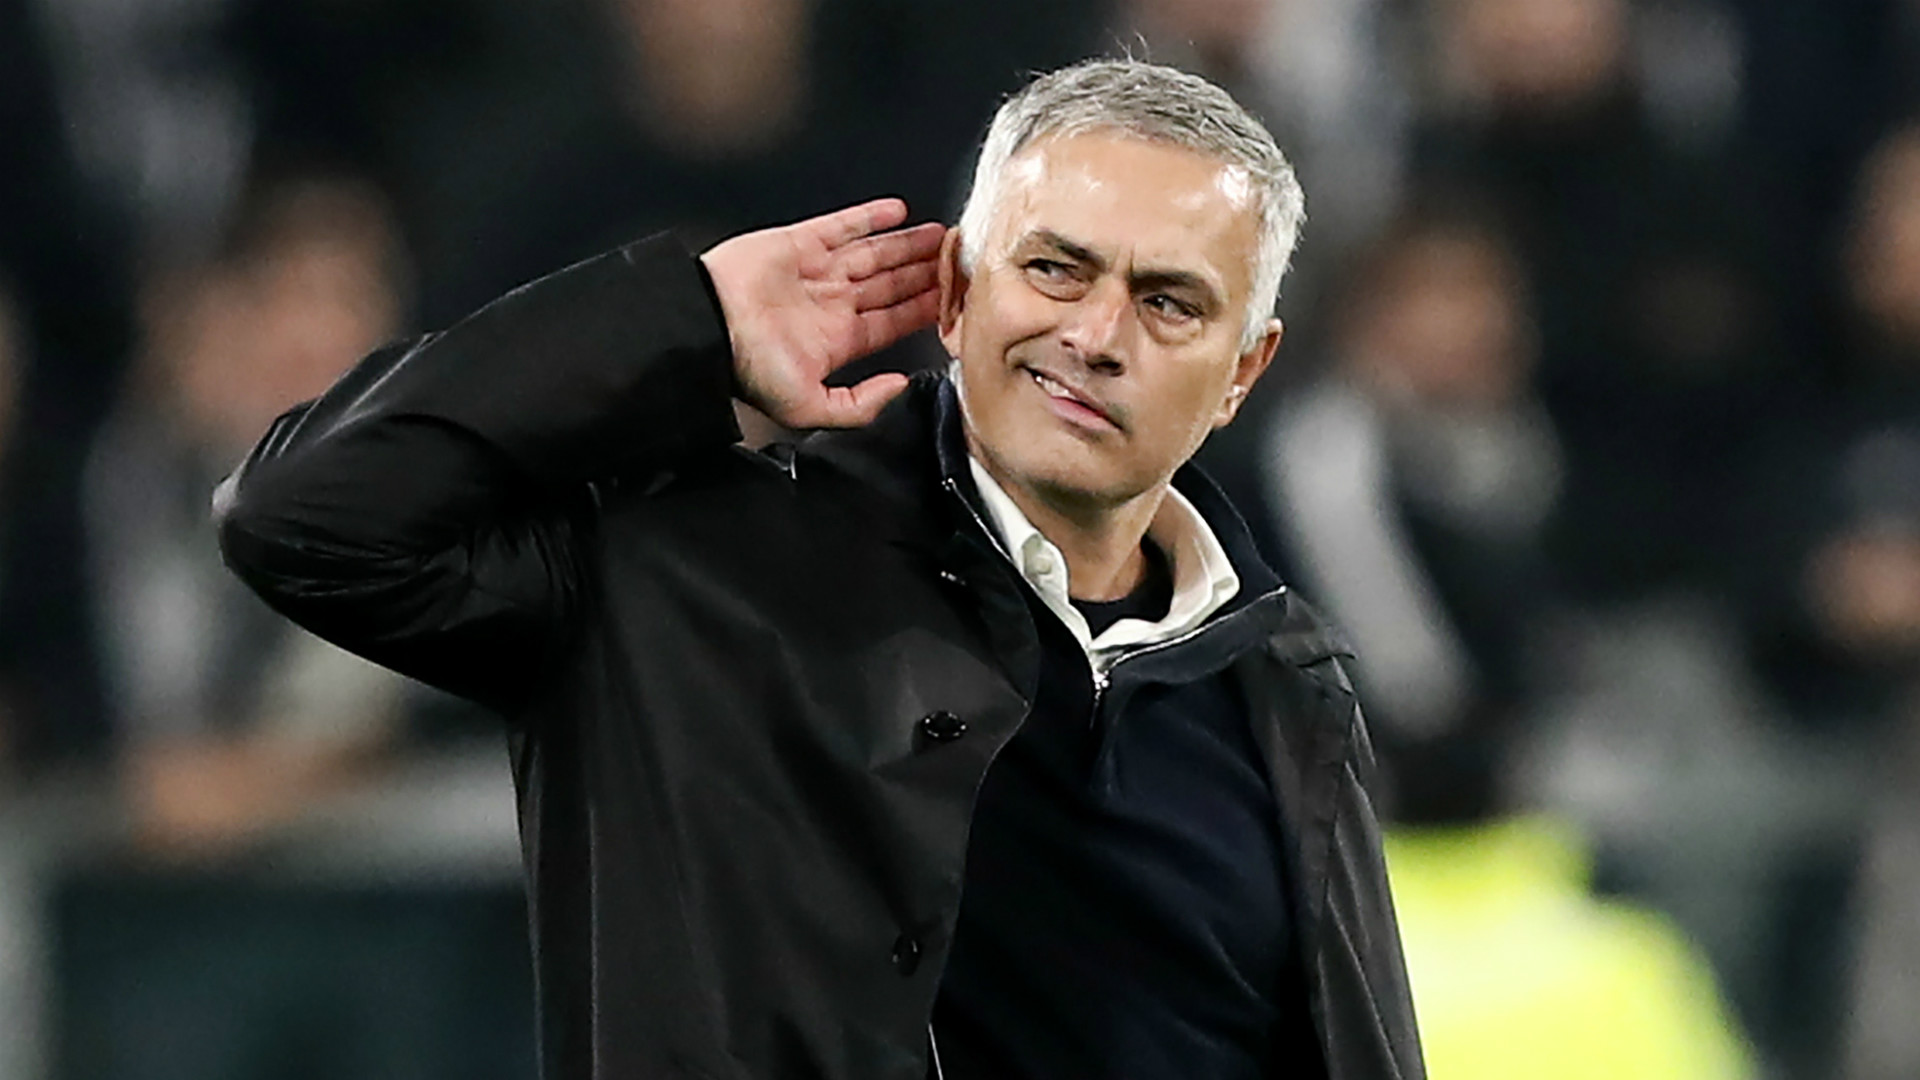 Soccer Bet Tips Manager Review on Jose Mourinho